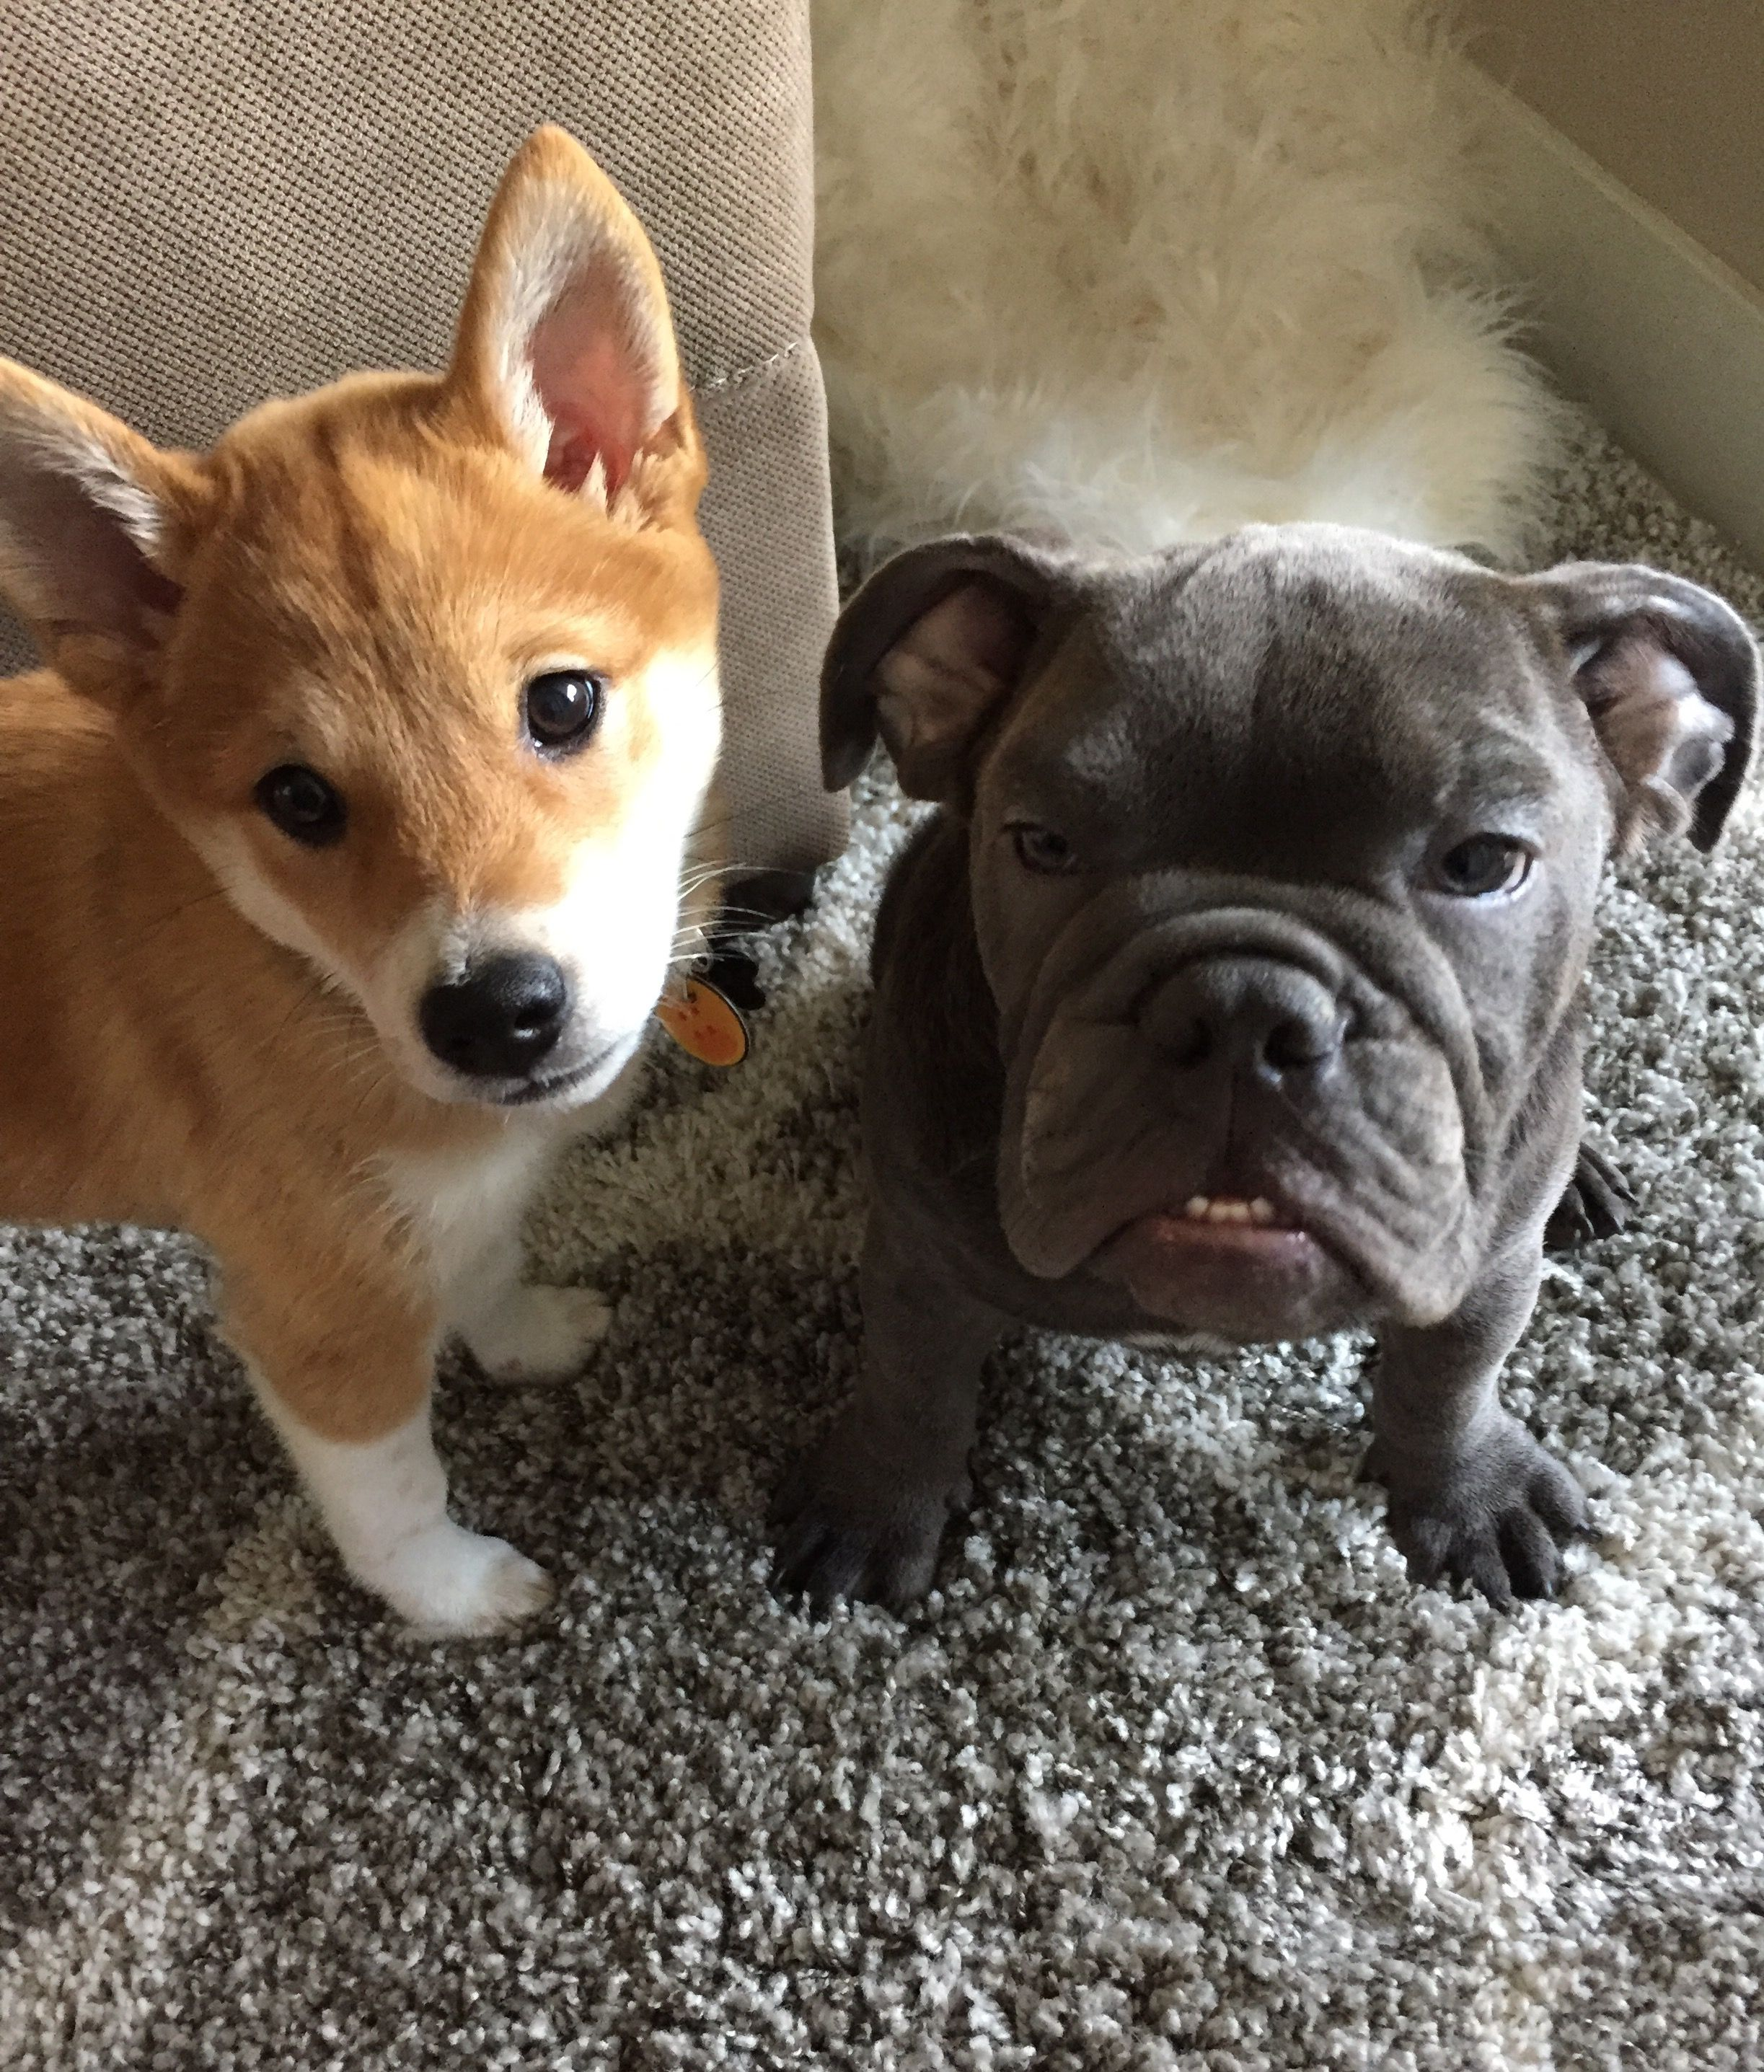 The cutest puppies ever Shiba Inu pup and blue English Bulldog